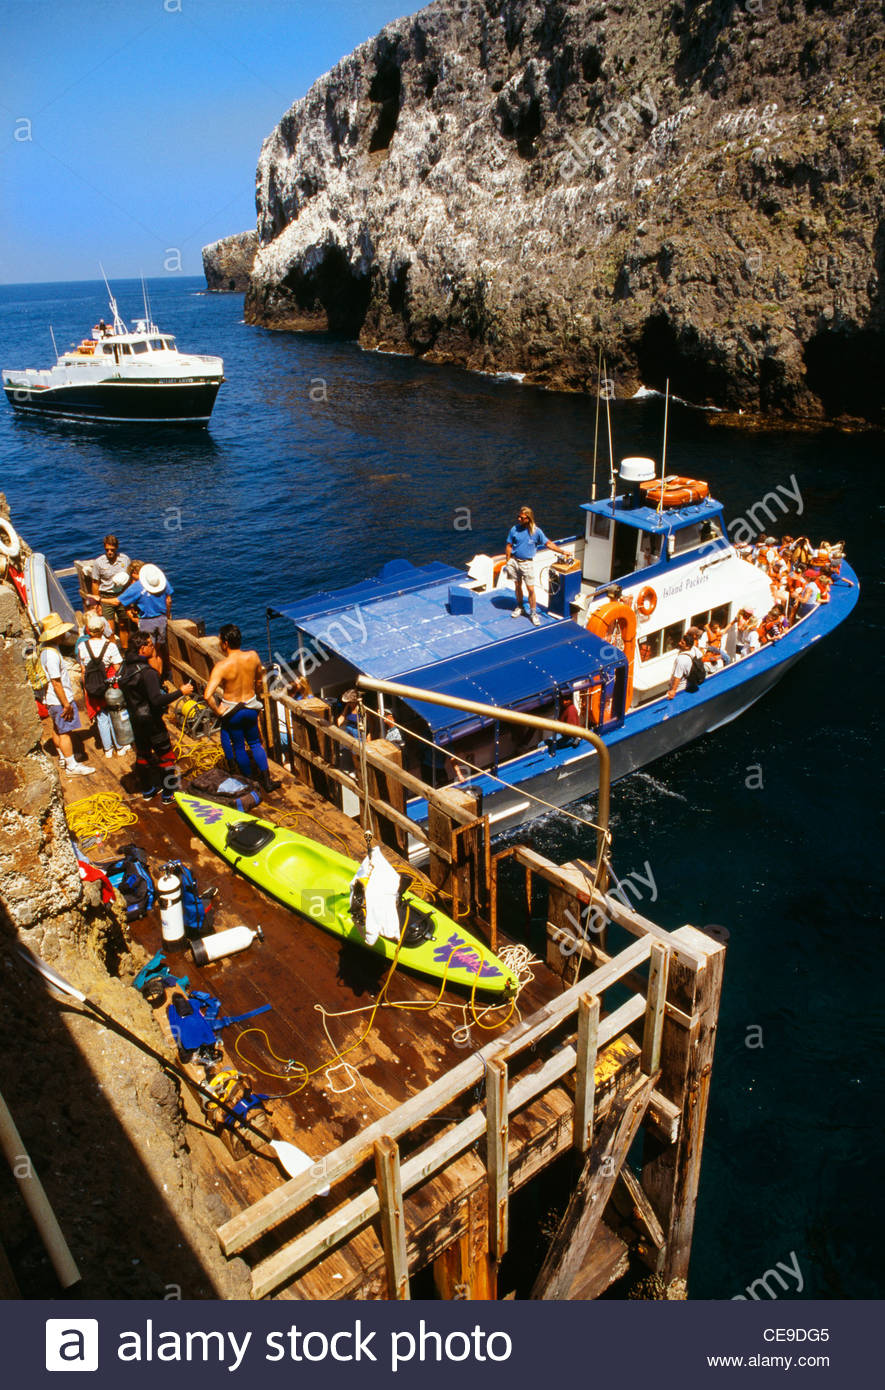 Landing Cove Anacapa Island: Landing Cove, With Boats [loading And Unloading Passengers